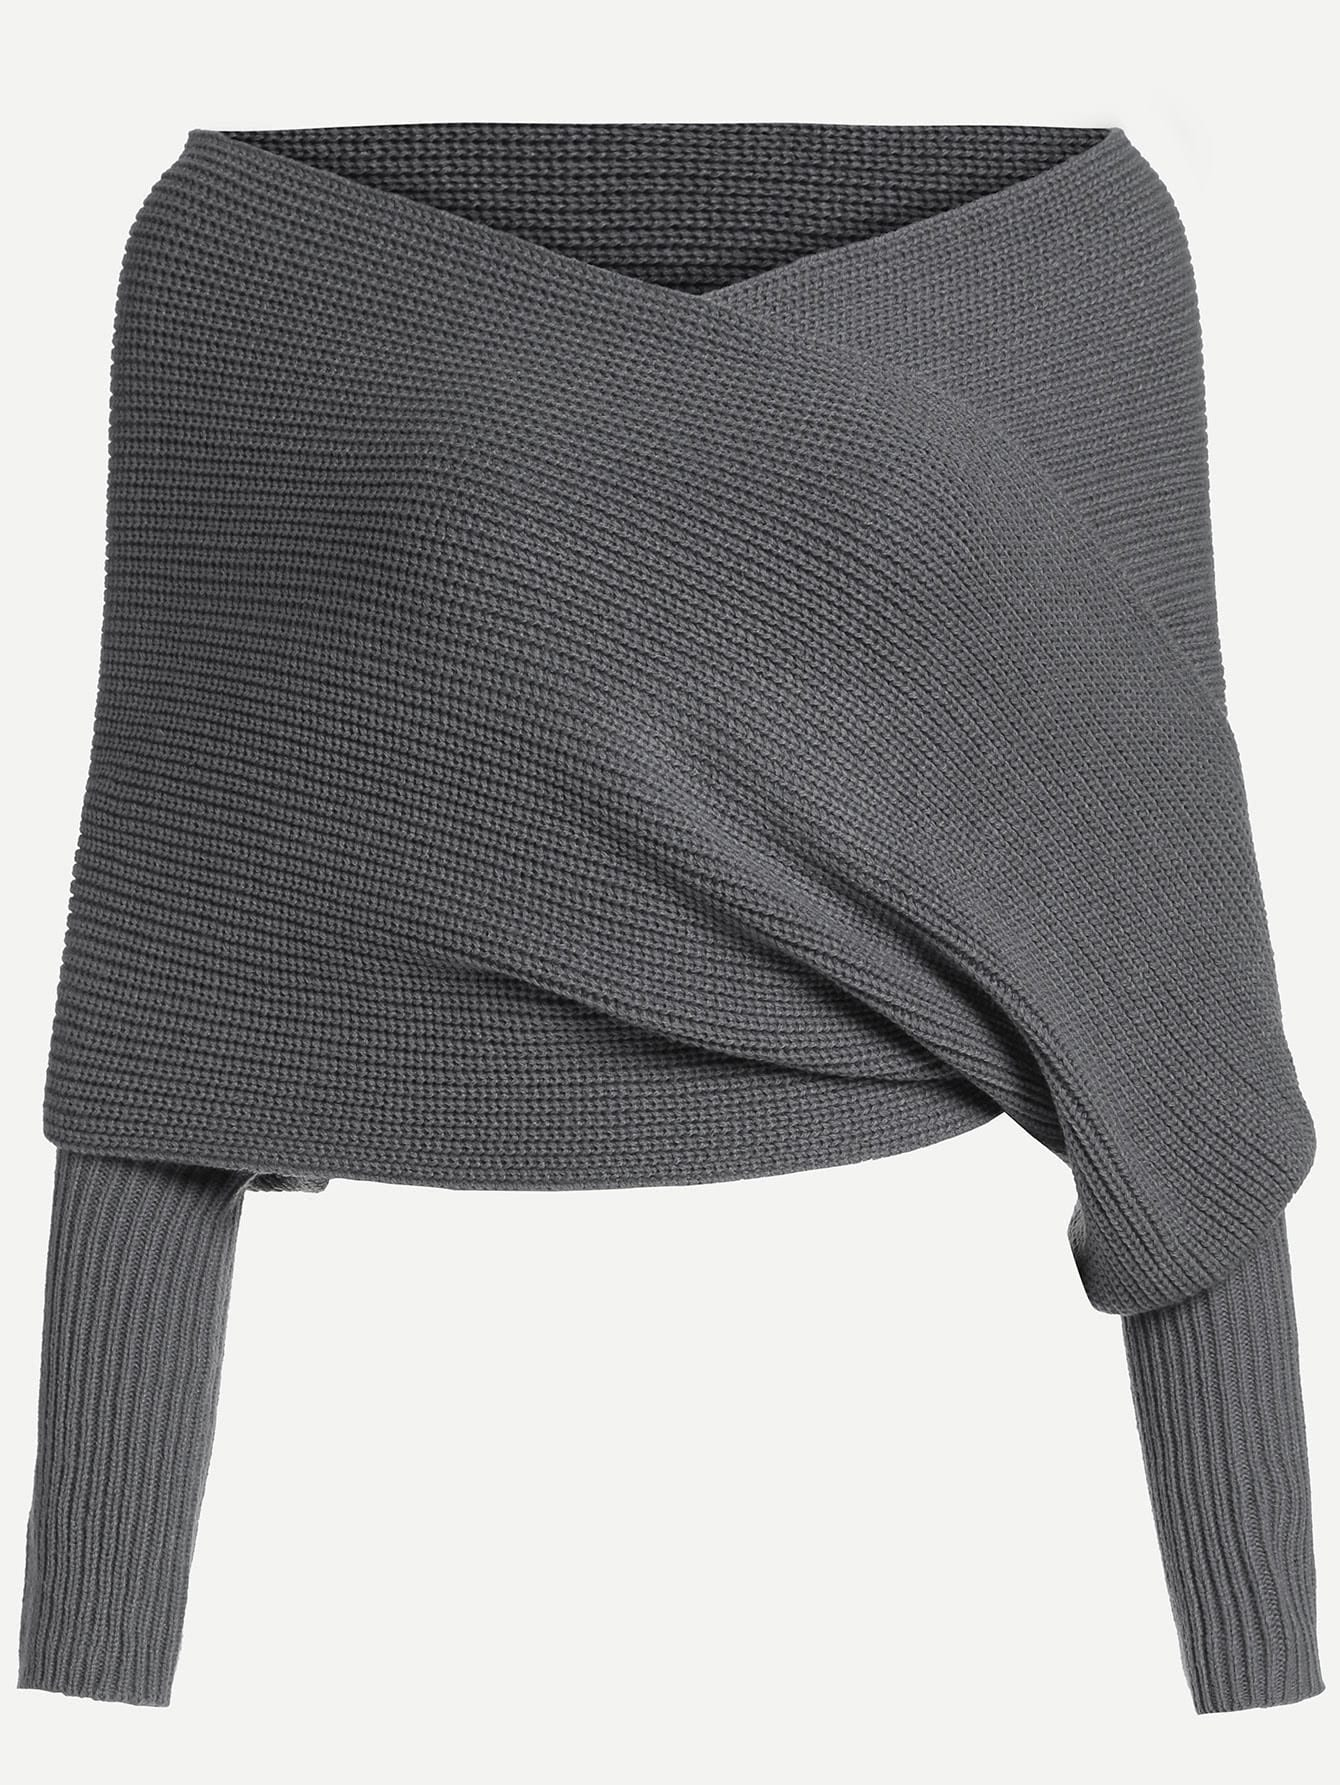 Dark Grey Off The Shoulder Sweater -SheIn(Sheinside)